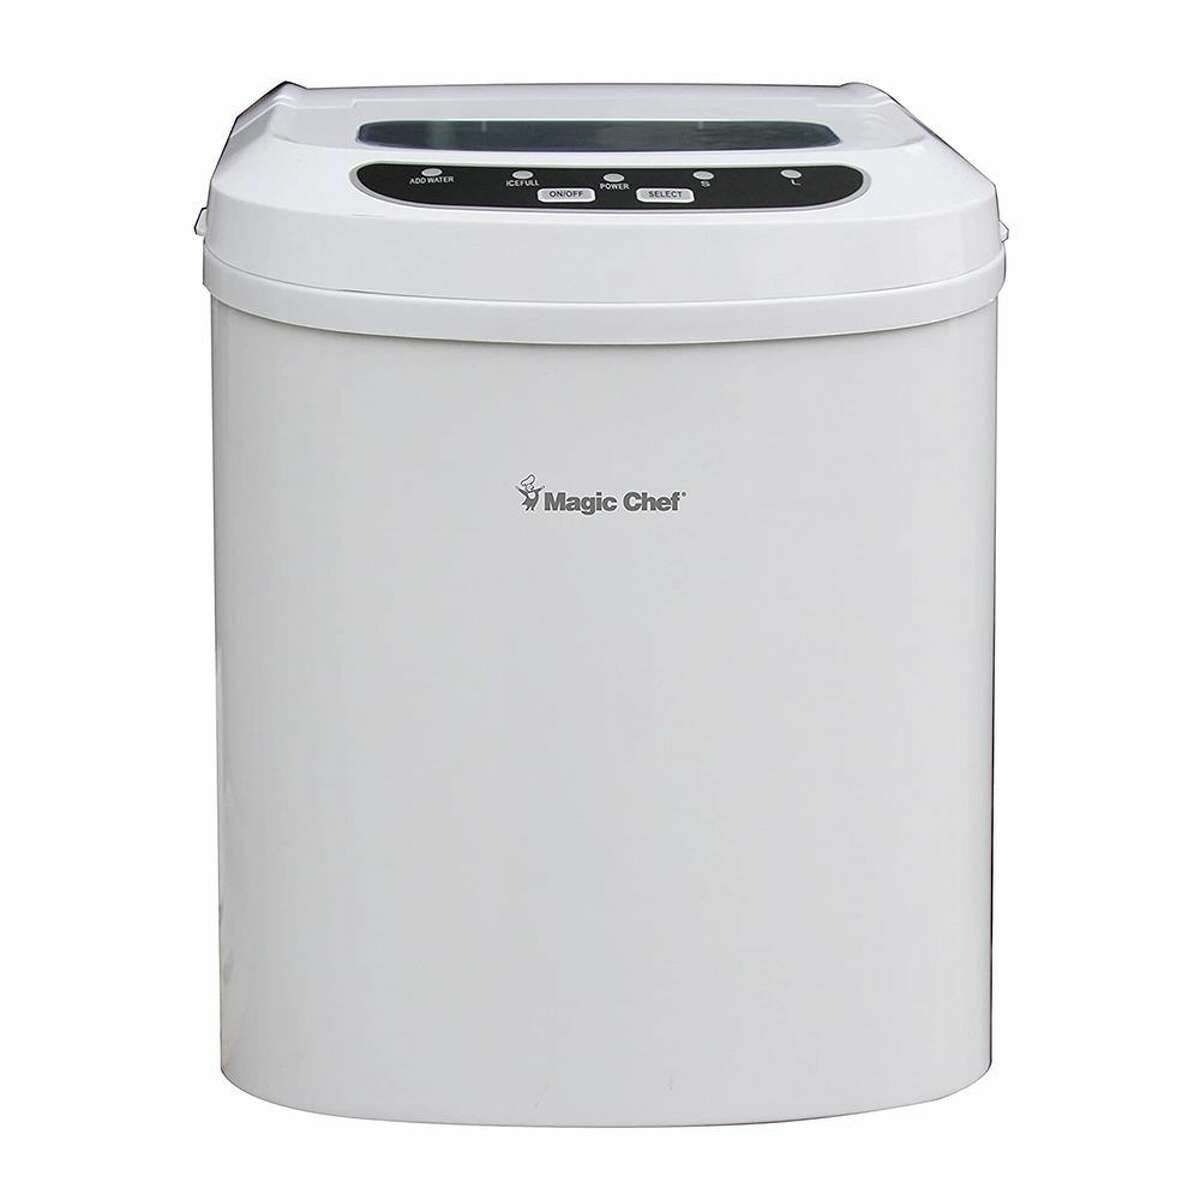 1) Magic Chef MCIM22W 27 lb. Portable Ice Maker: $132.99 Shop Now An ice maker should be quick, efficient, and easy-to-use. The Magic Chef portable ice maker ticks all those boxes and then some. It's one of the most affordable and reliable ice makers on the market. It produces fresh ice in 7 to 10 minutes depending on what size cubes you want to make. At 14 inches deep, about 13 inches tall, and 9.5 inches wide the ice maker is compact enough to fit on most countertops, and its rectangular shape and narrow build makes it easy to store or travel with. You can expect this model to produce 27 pounds of ice each day. It's available in white, silver, or black and is also a favorite of Business Insider. Read More: We Tried the Oprah-Approved Bartesian - the Keruig for Cocktails